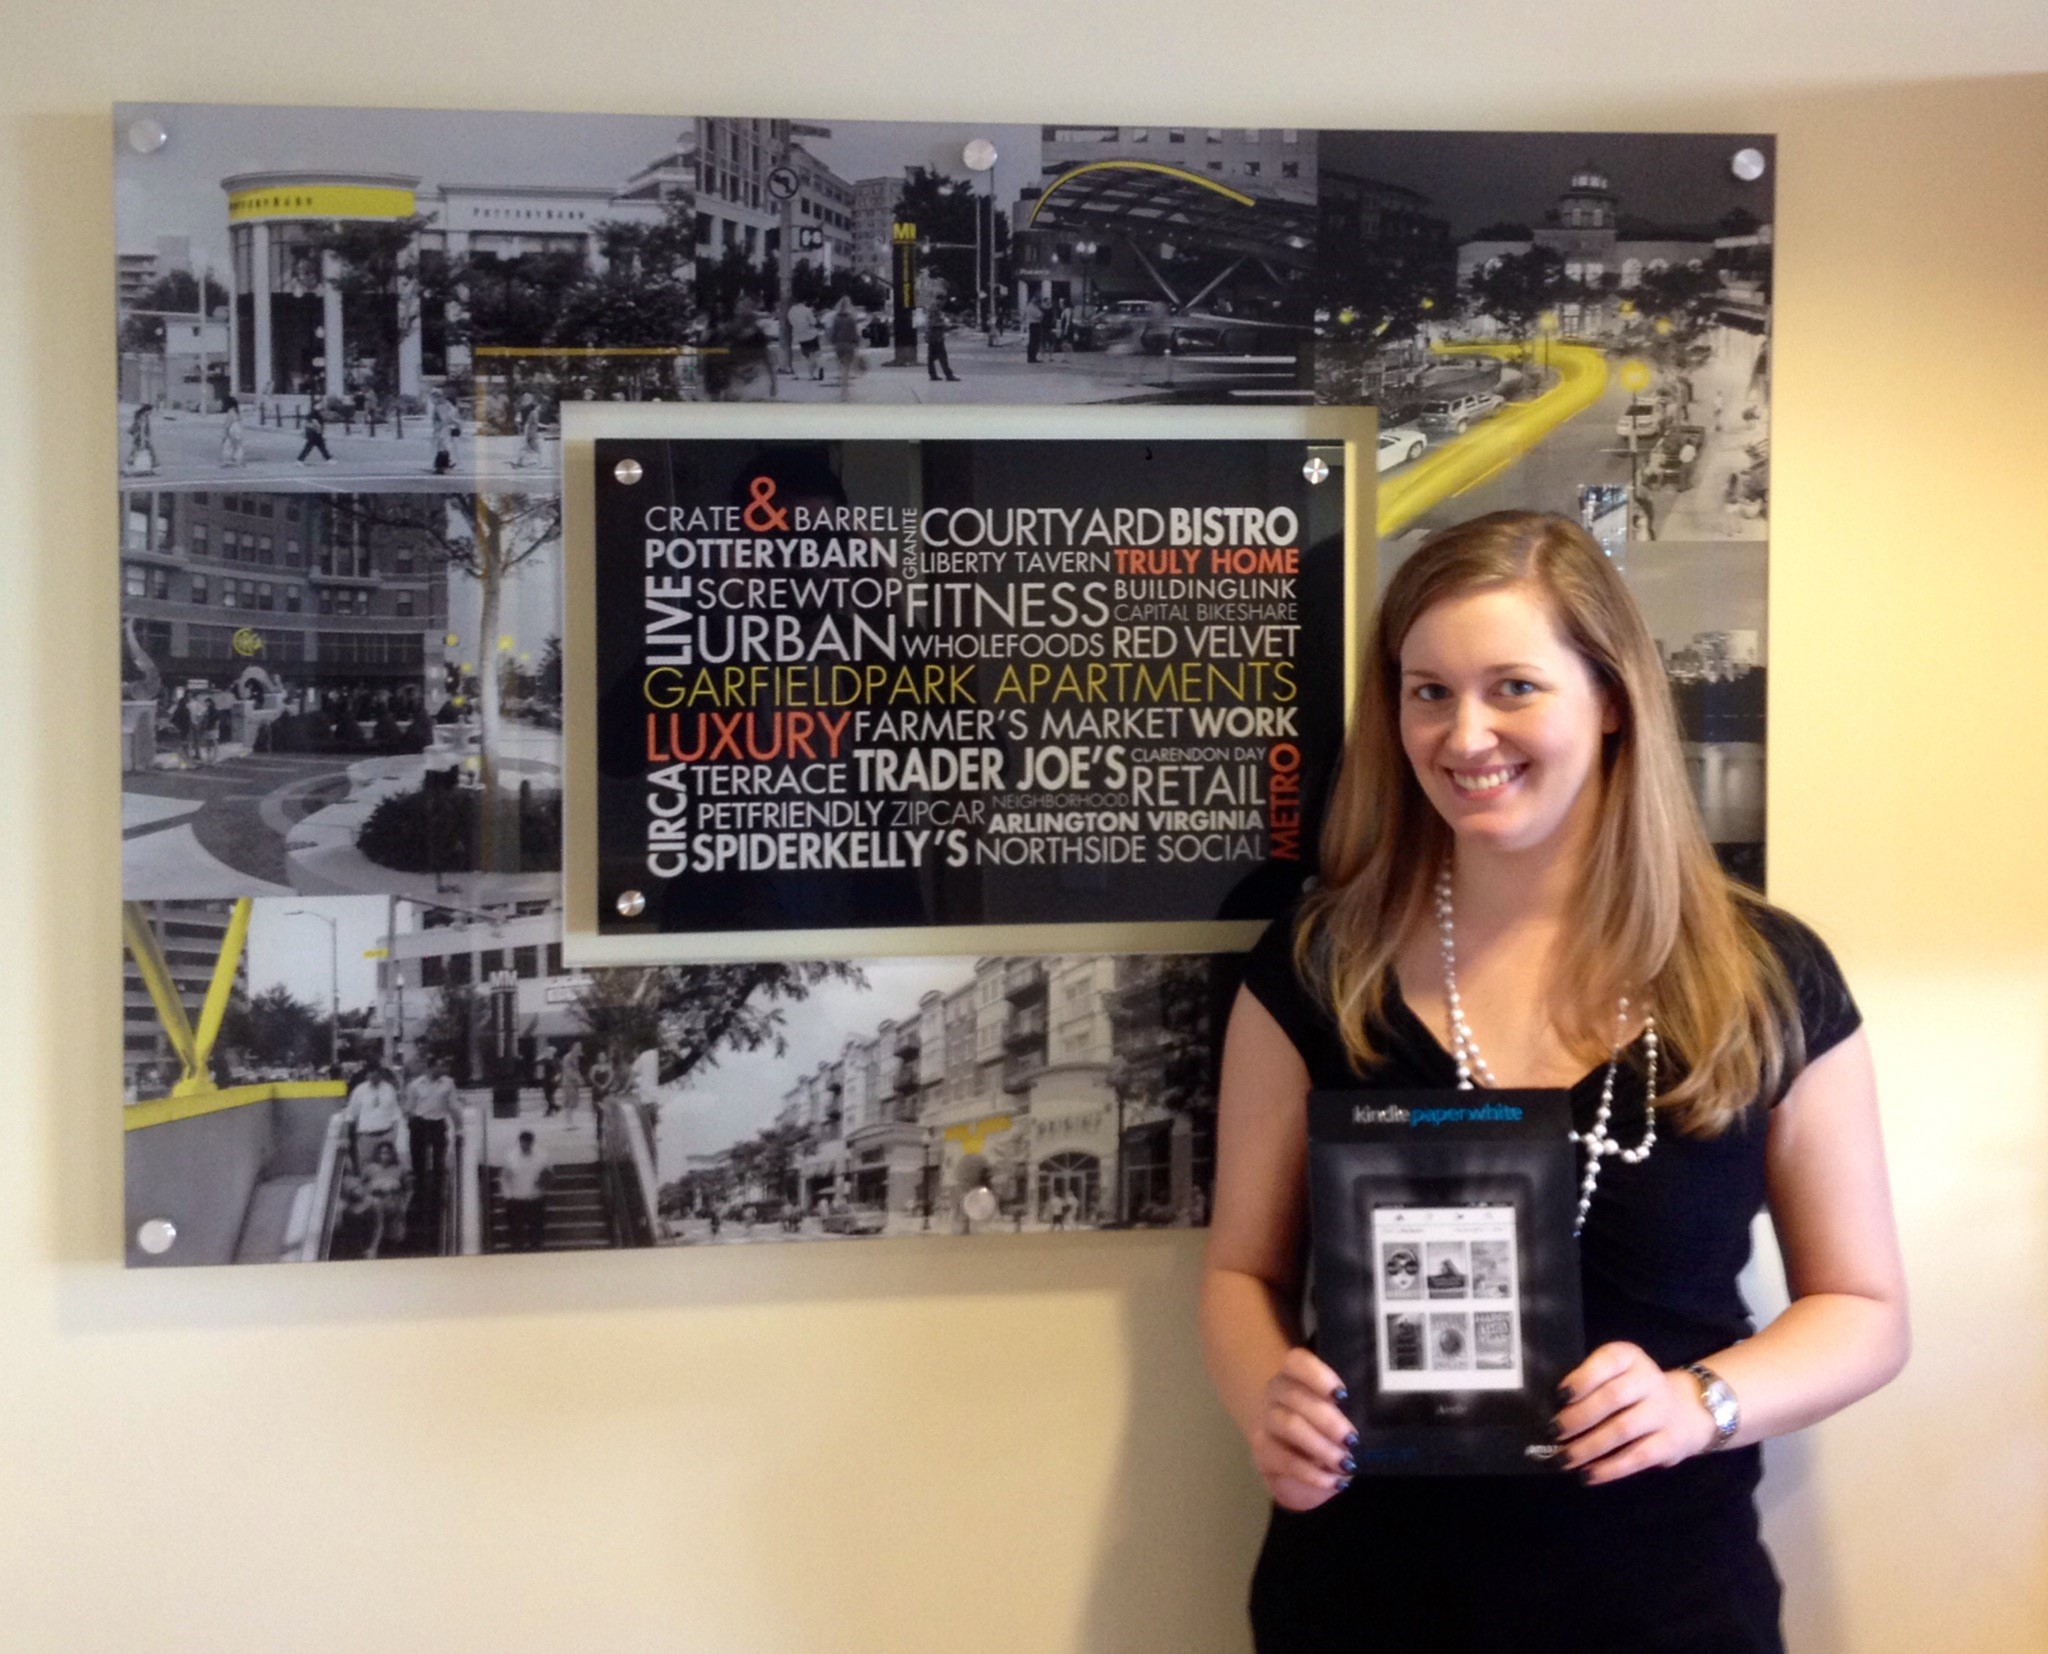 Jenna Franks, property manager of Garfield Park in Clarendon